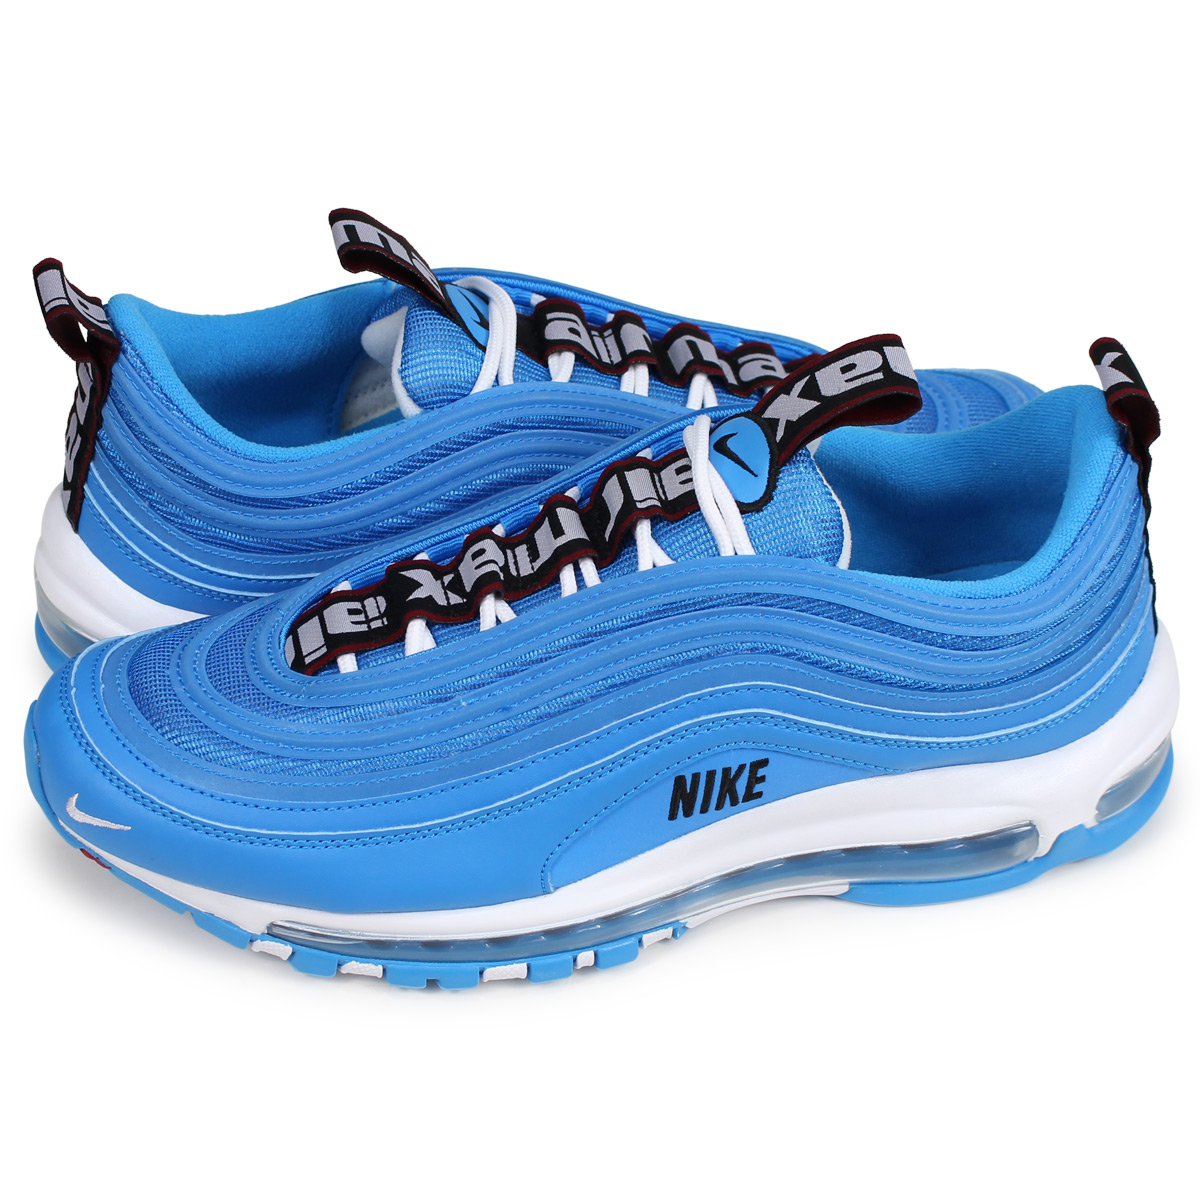 Nike NIKE Air Max 97 sneakers men AIR MAX 97 PREMIUM blue 312,834 401 [load planned Shinnyu load in reservation product 1122 containing]